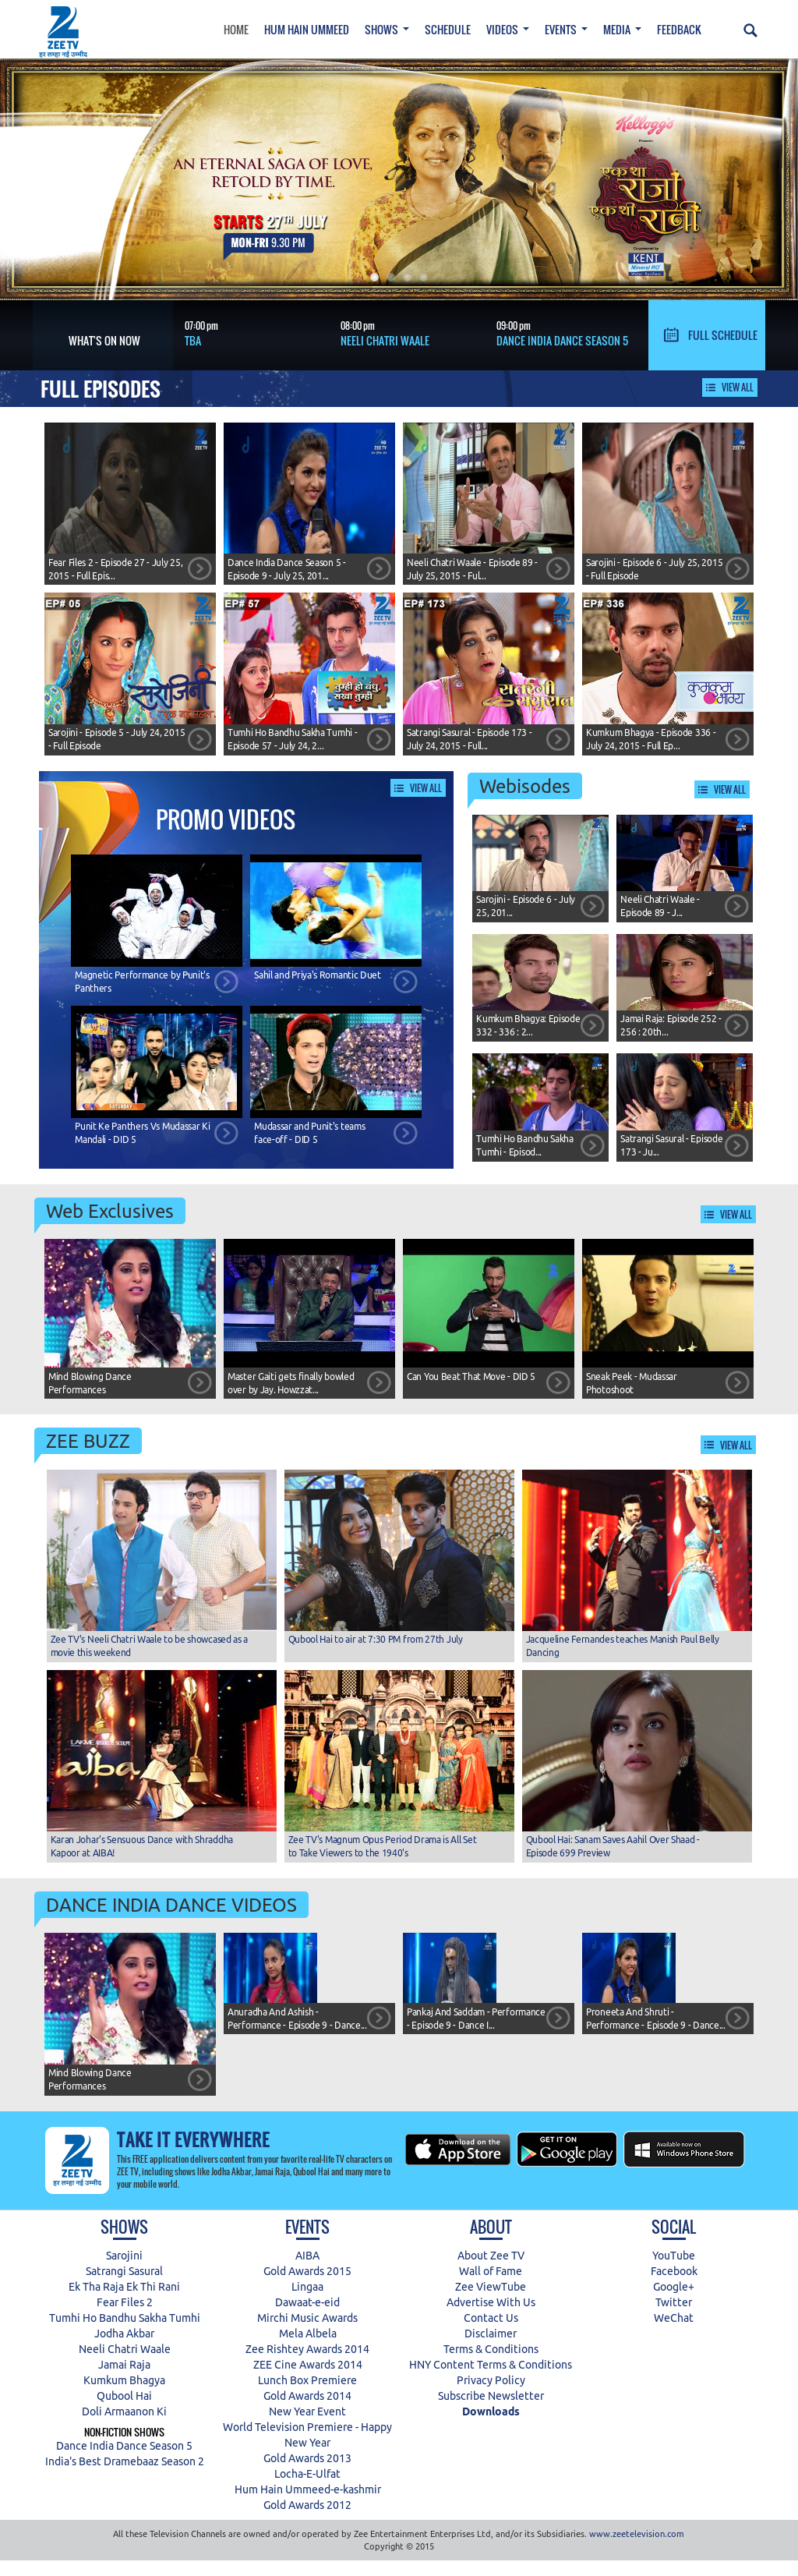 Zee TV Competitors, Revenue and Employees - Owler Company Profile